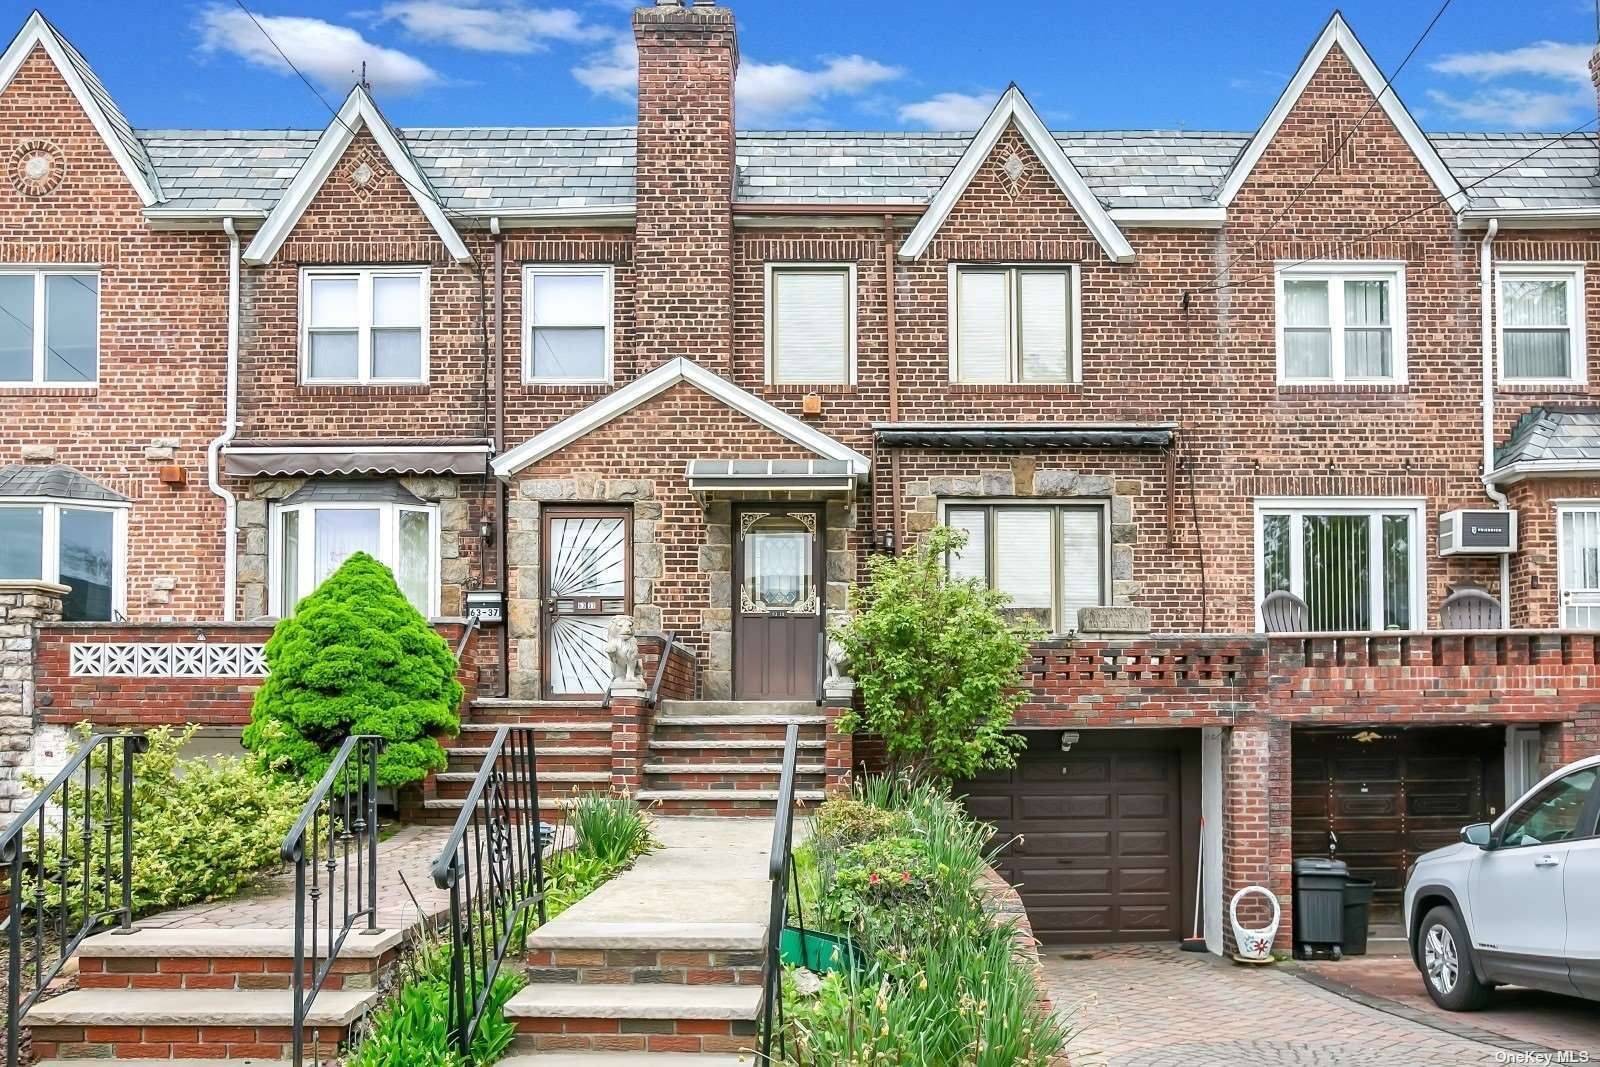 63-39 77th Place, Middle Village, NY 11379 - MLS#: 3315280